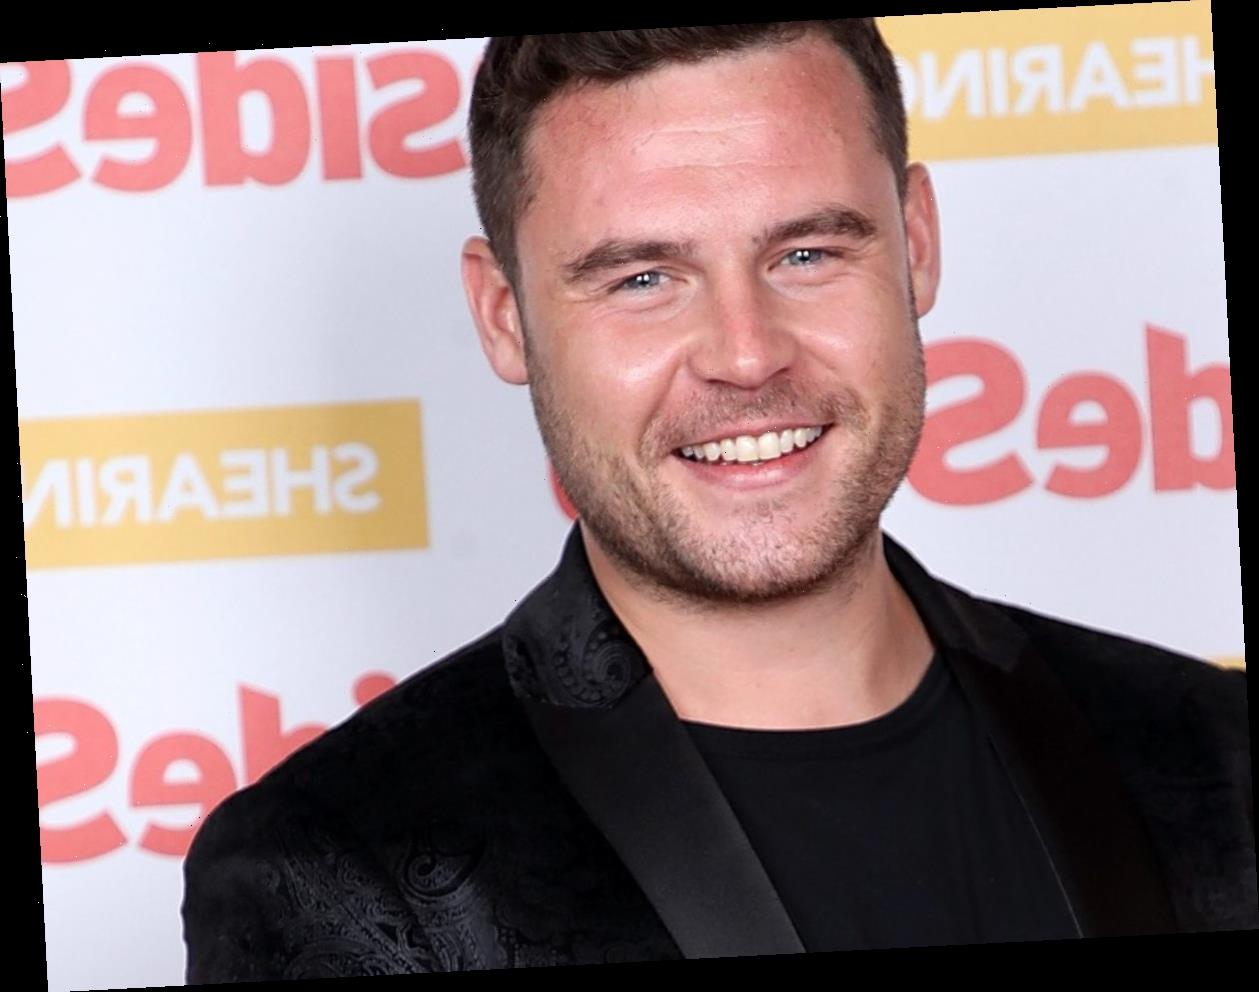 Emmerdale's Danny Miller in shock return as Aaron – and he's already back on set filming – The Sun